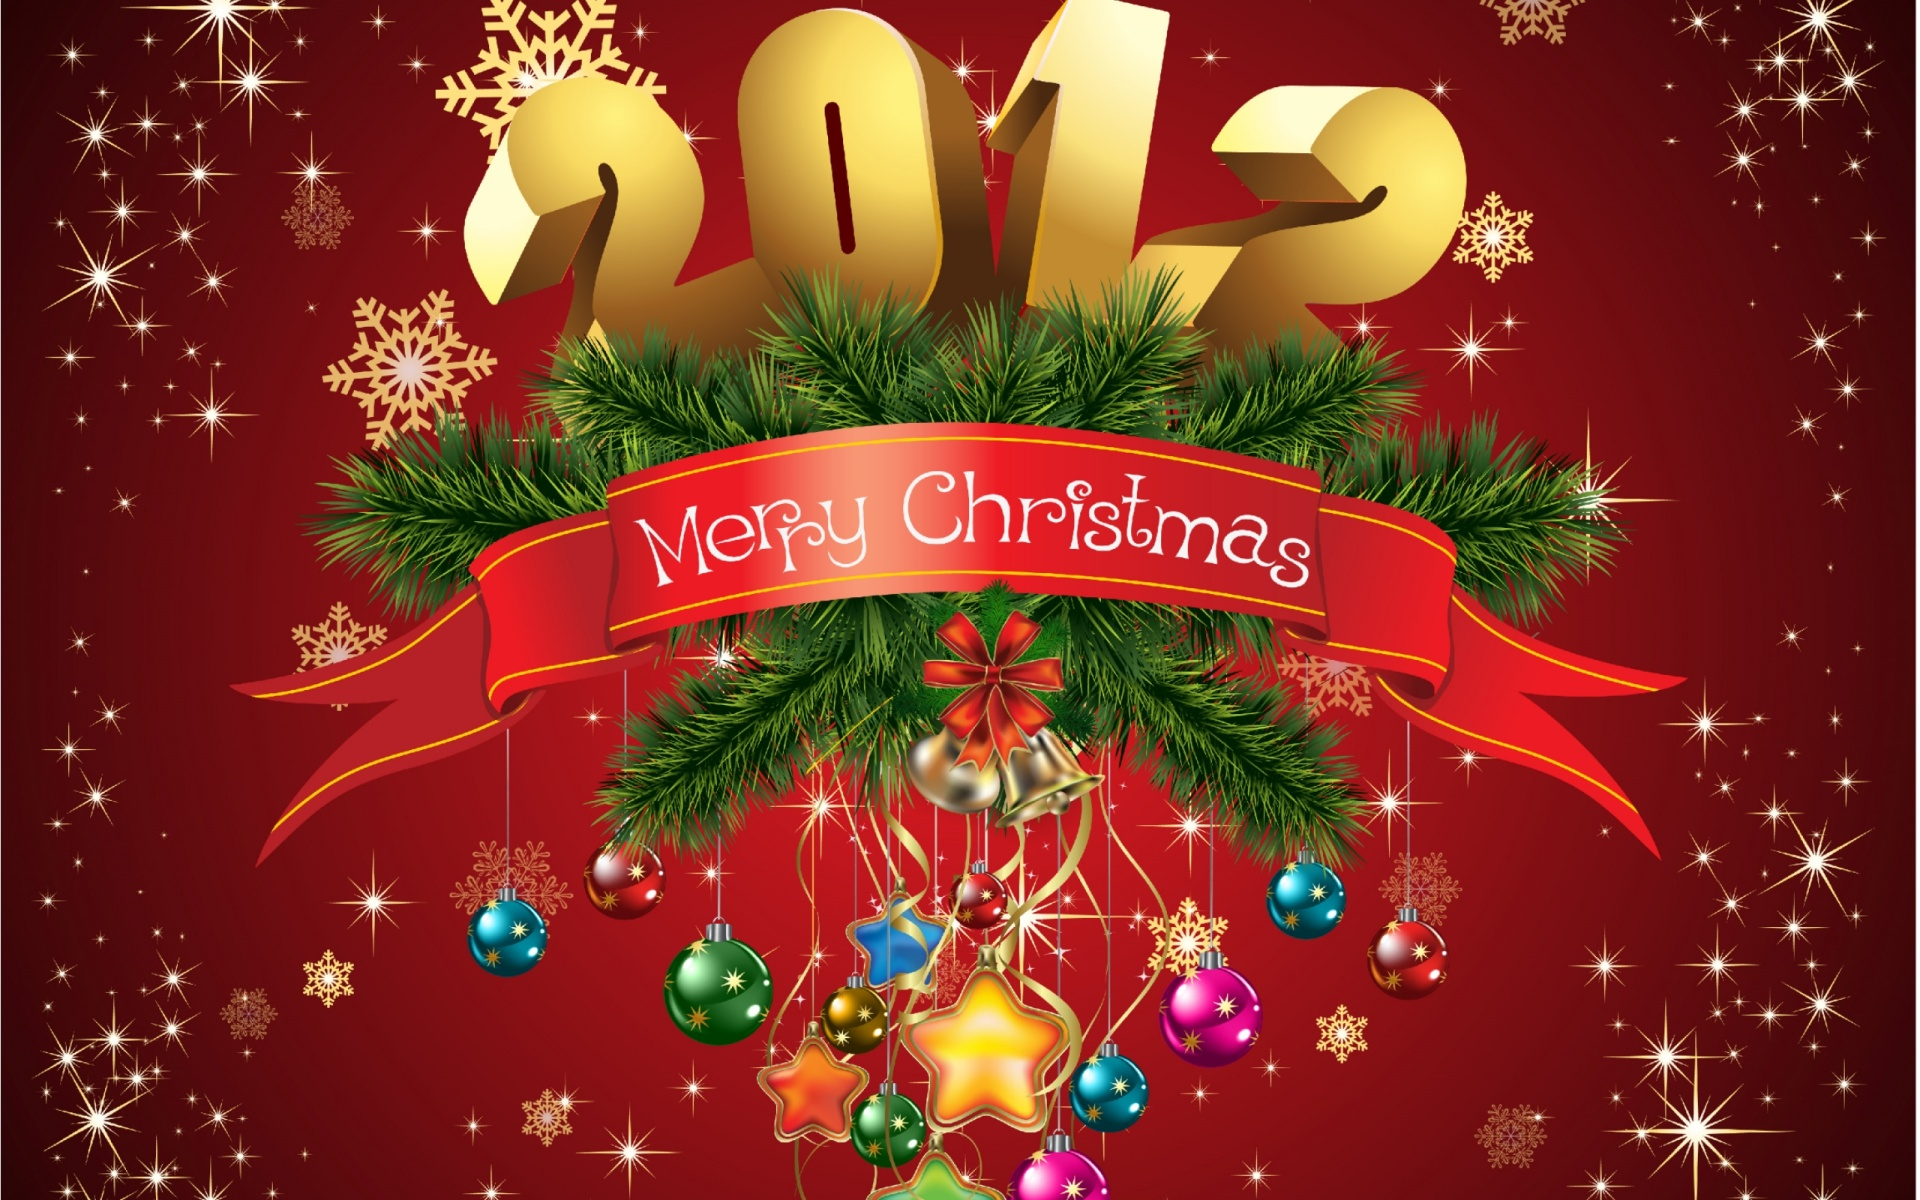 1920x1200 Merry Christmas 2012 desktop PC and Mac wallpaper